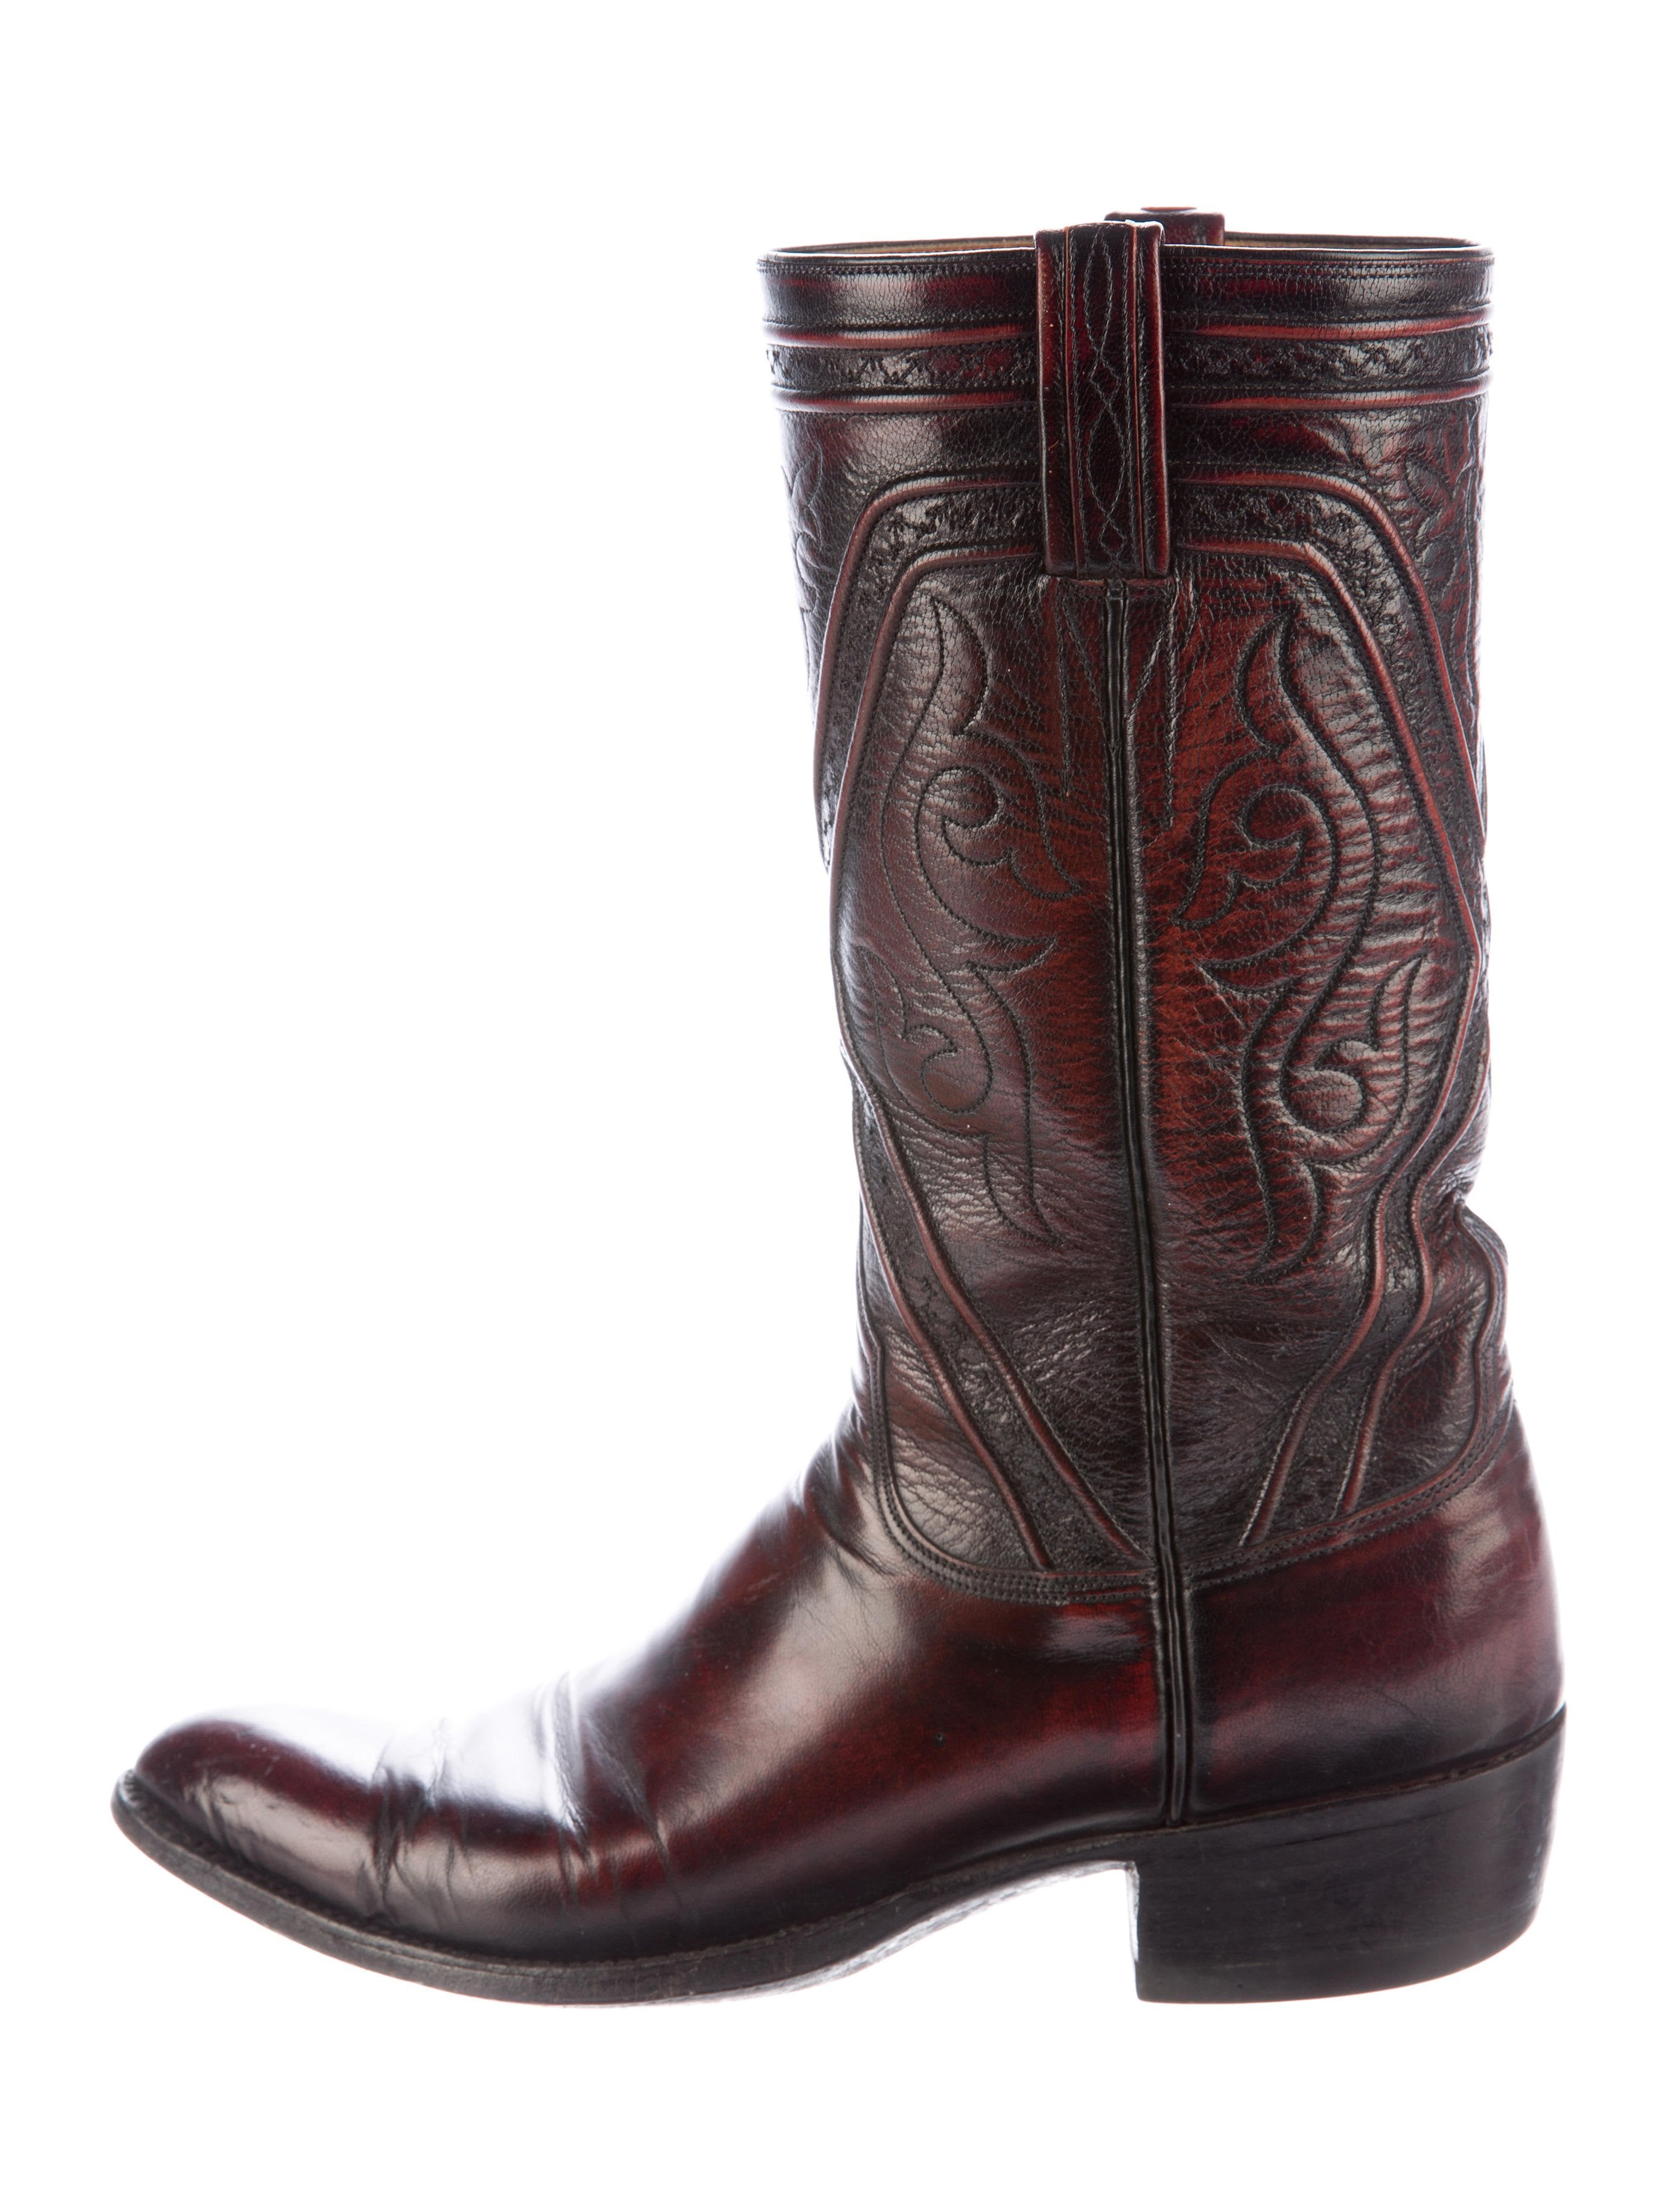 Lucchese Leather Cowboy Boots Shoes Lcc20027 The